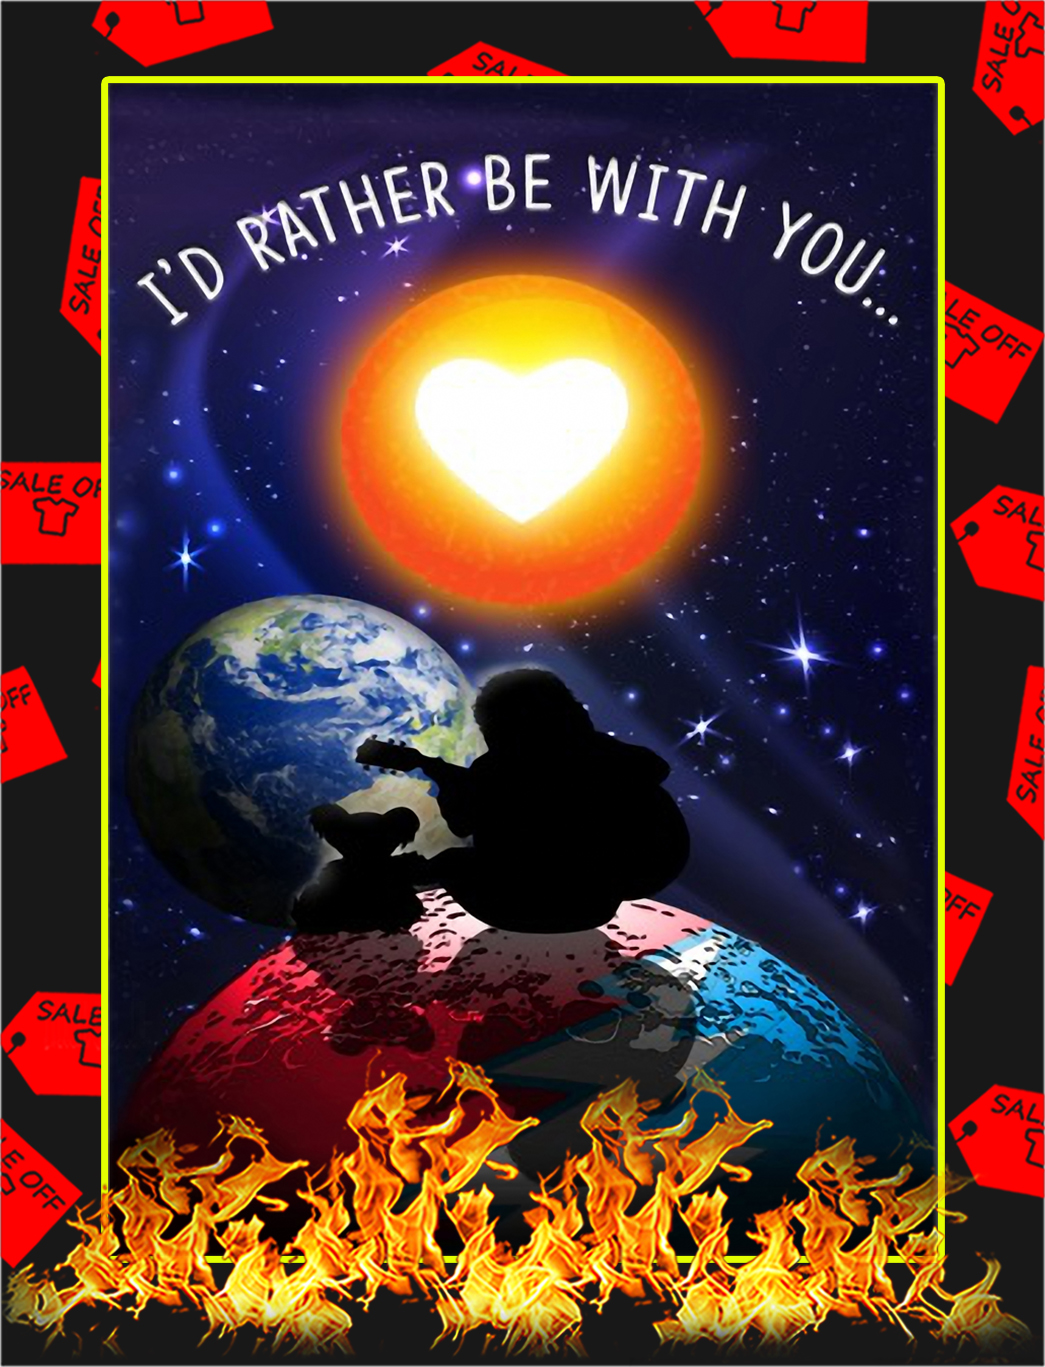 I'd rather be with you poster - A4